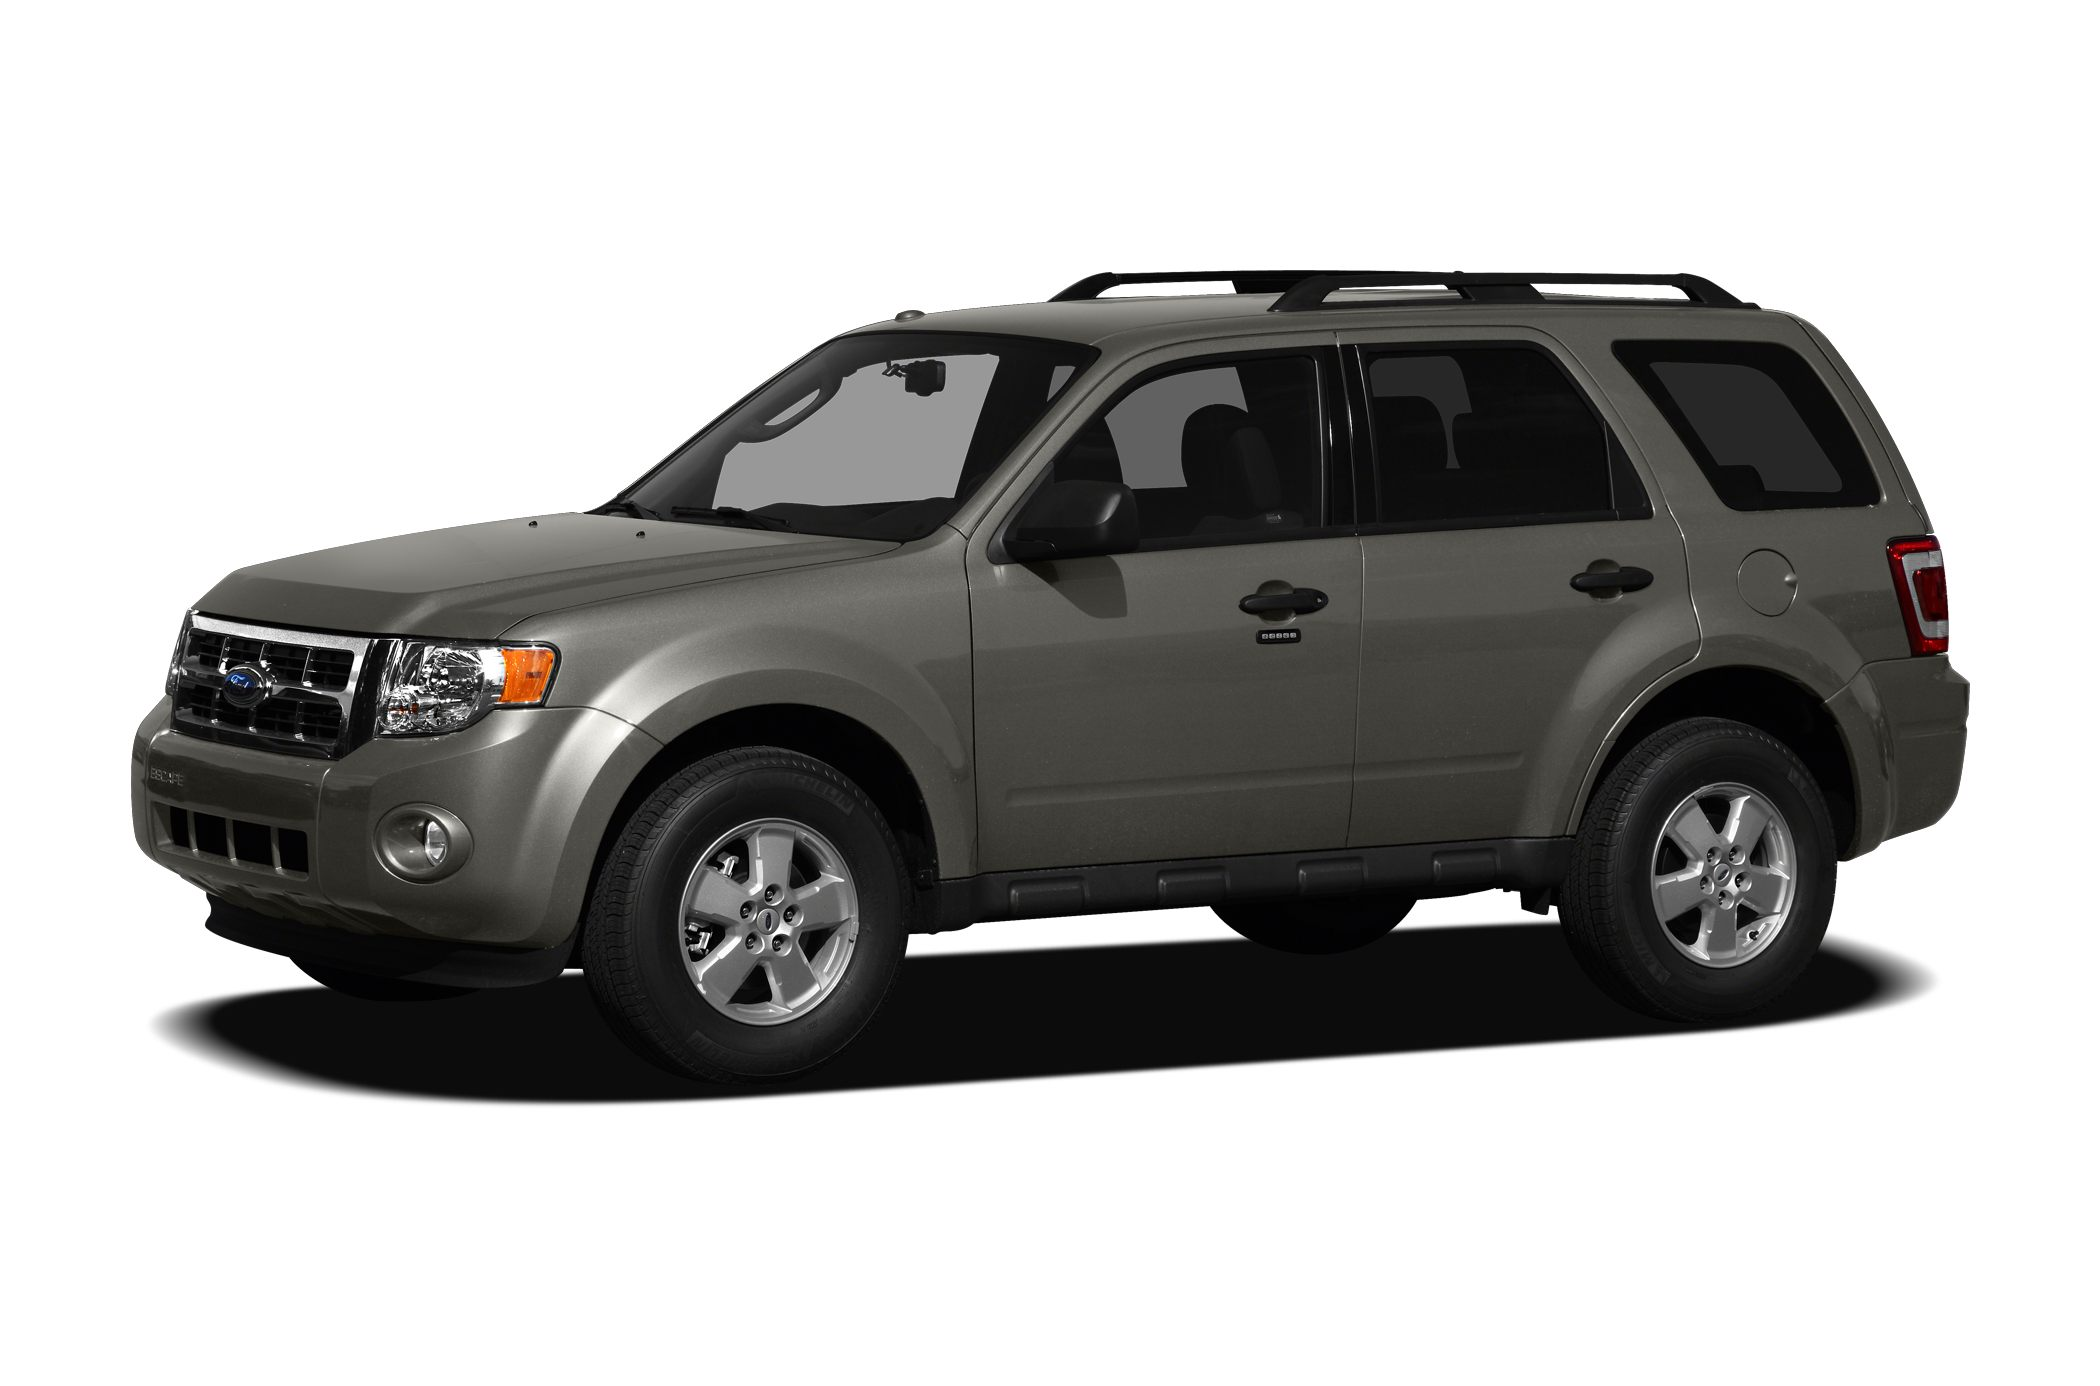 2012 Ford Escape XLT SUV for sale in Ebensburg for $21,000 with 30,411 miles.